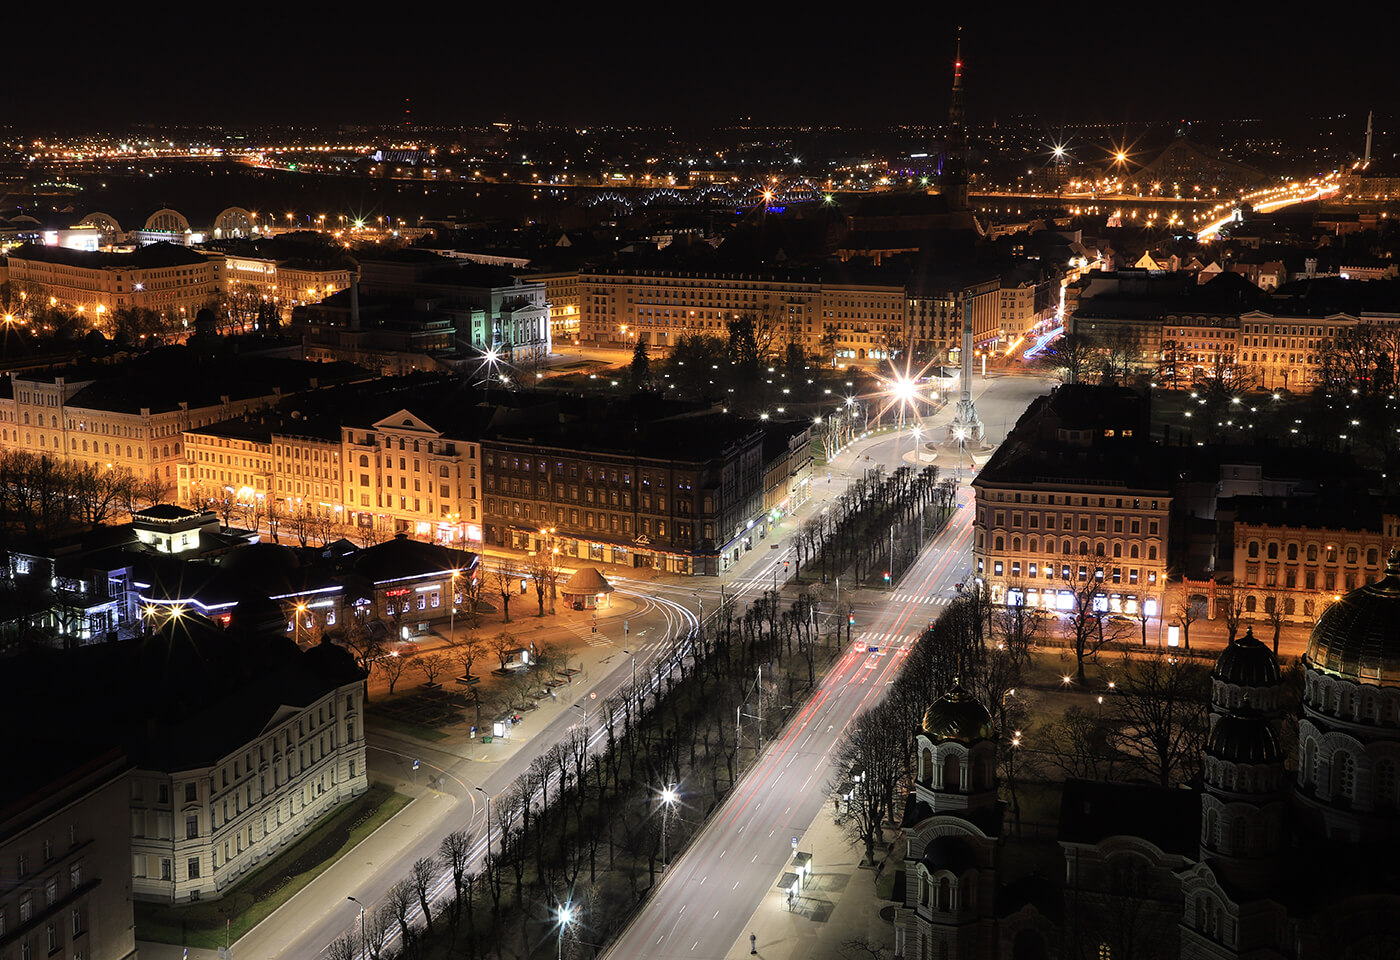 View from the Skyline Bar in Riga, Latvia at night, photographed with the Canon 6D Mark II DSLR camera